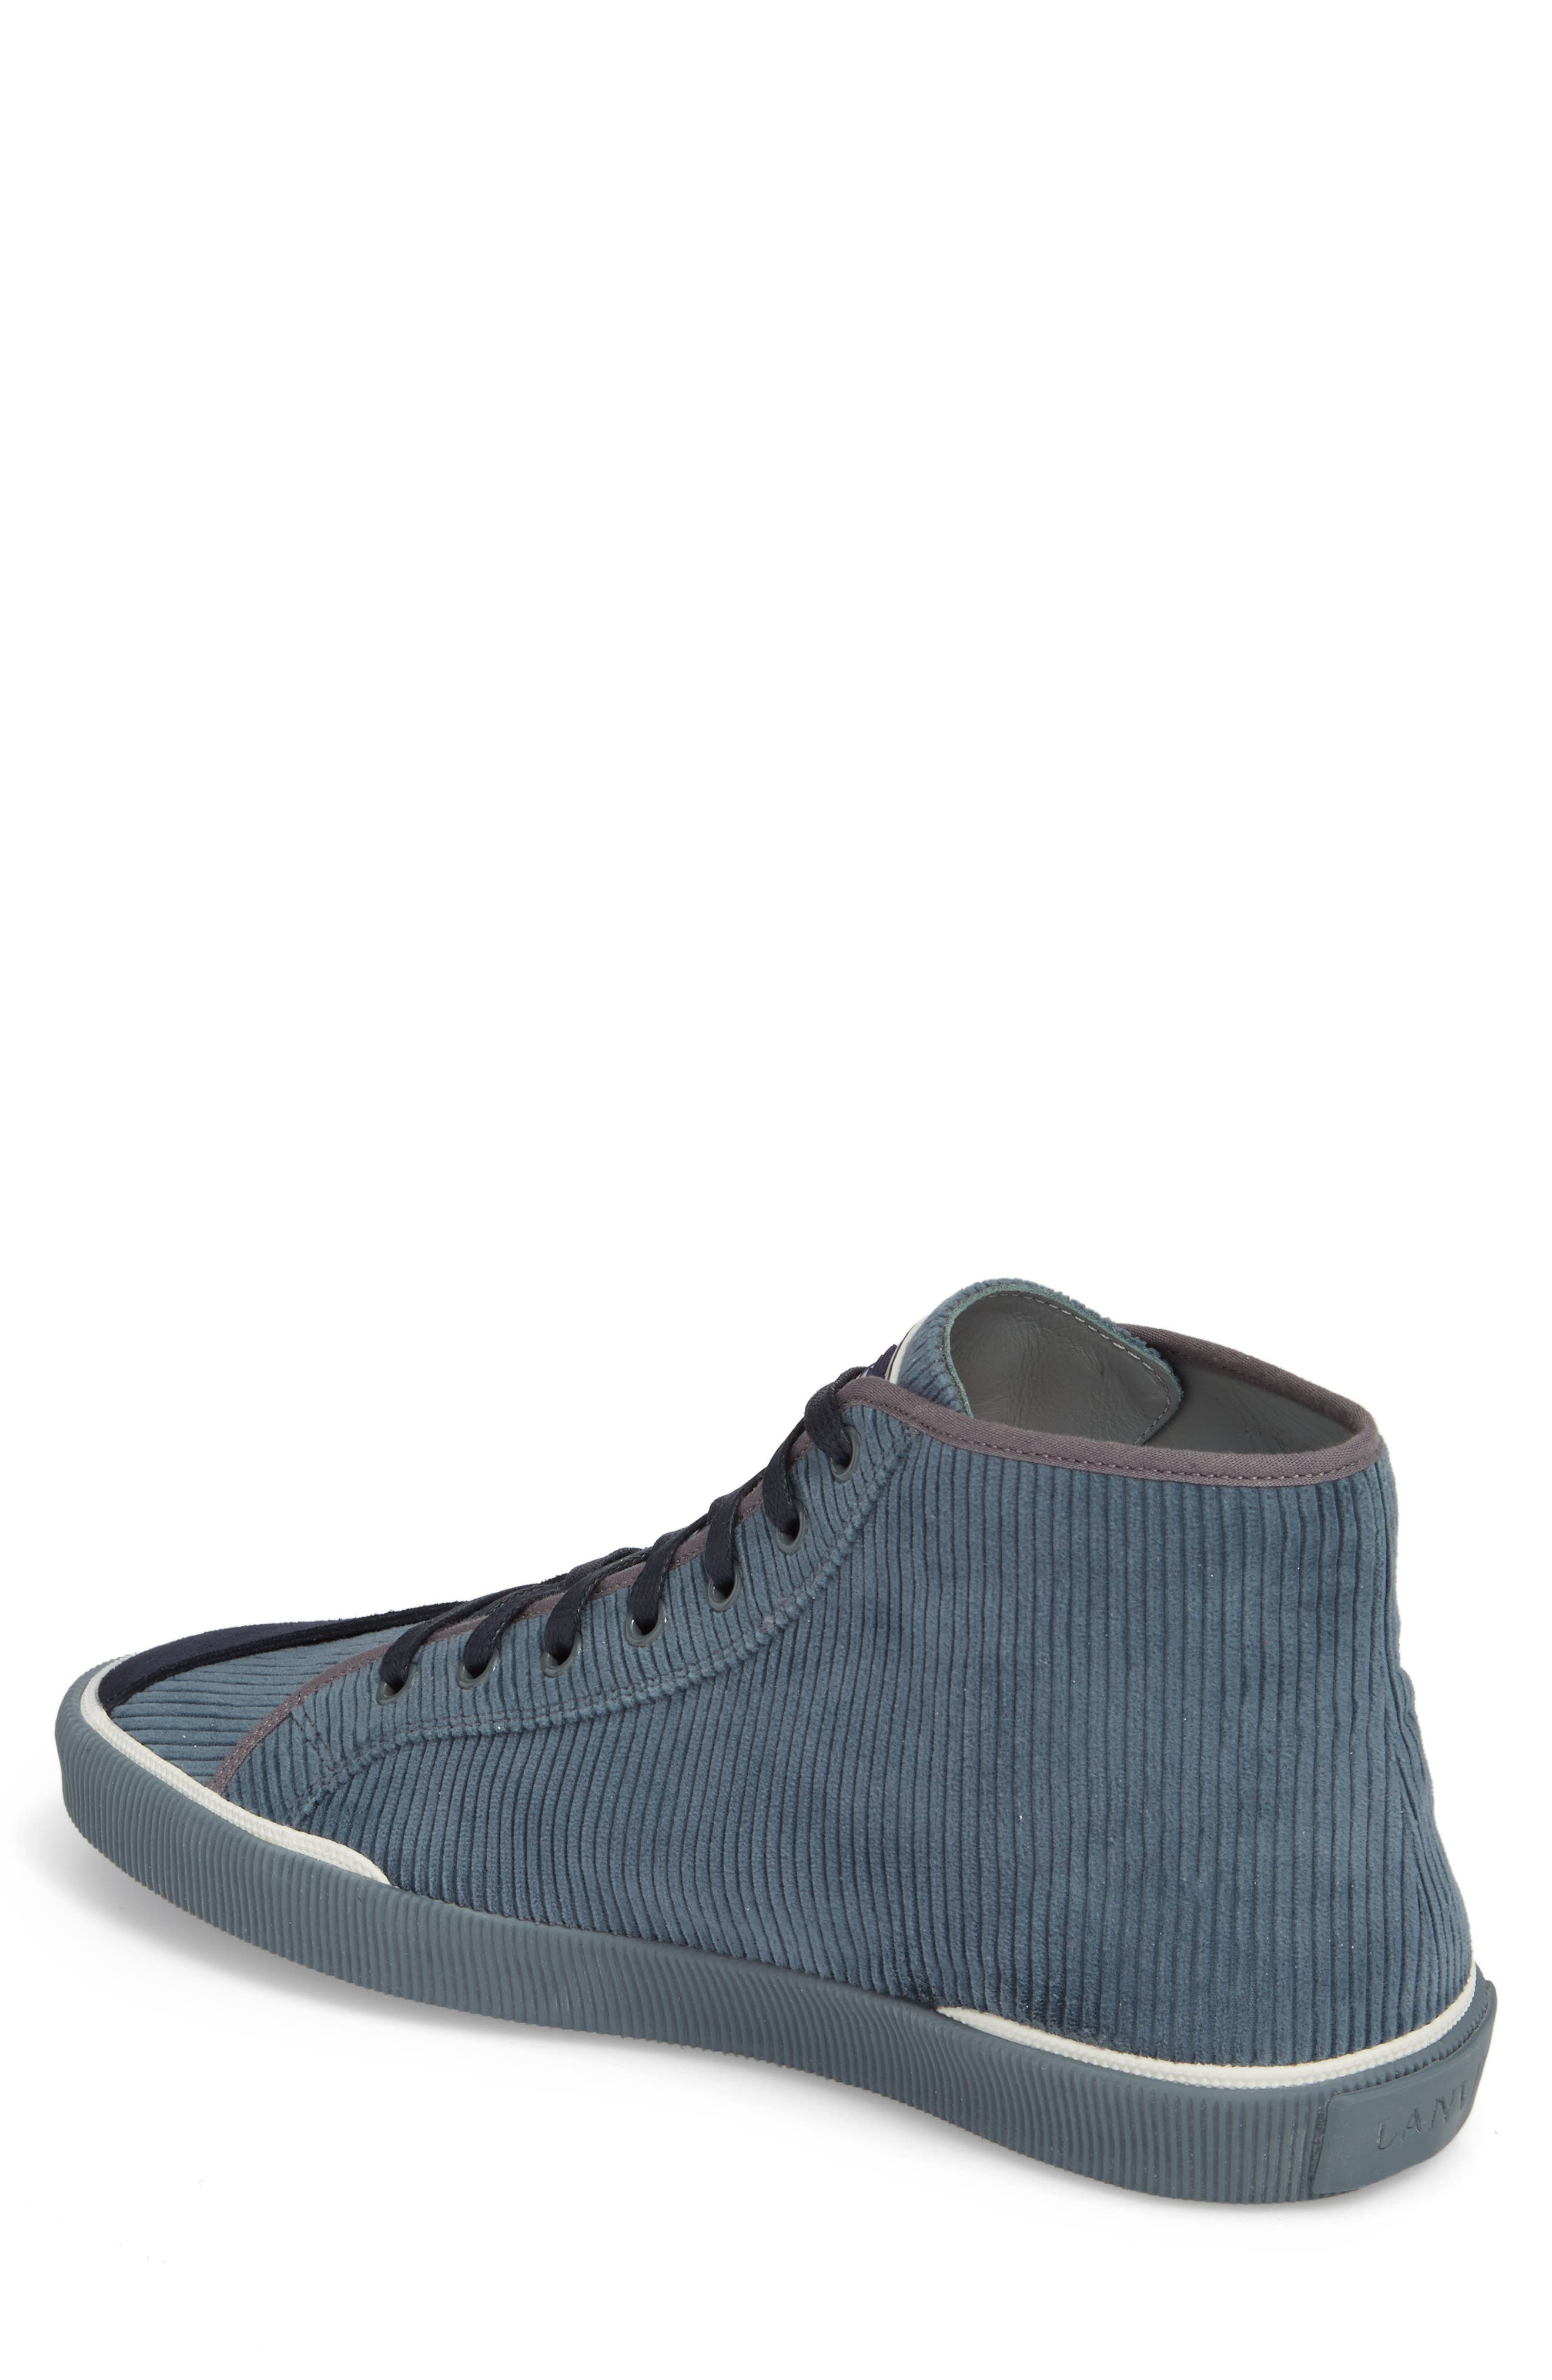 Mid Top Sneaker,                             Alternate thumbnail 2, color,                             Elephant Grey Suede